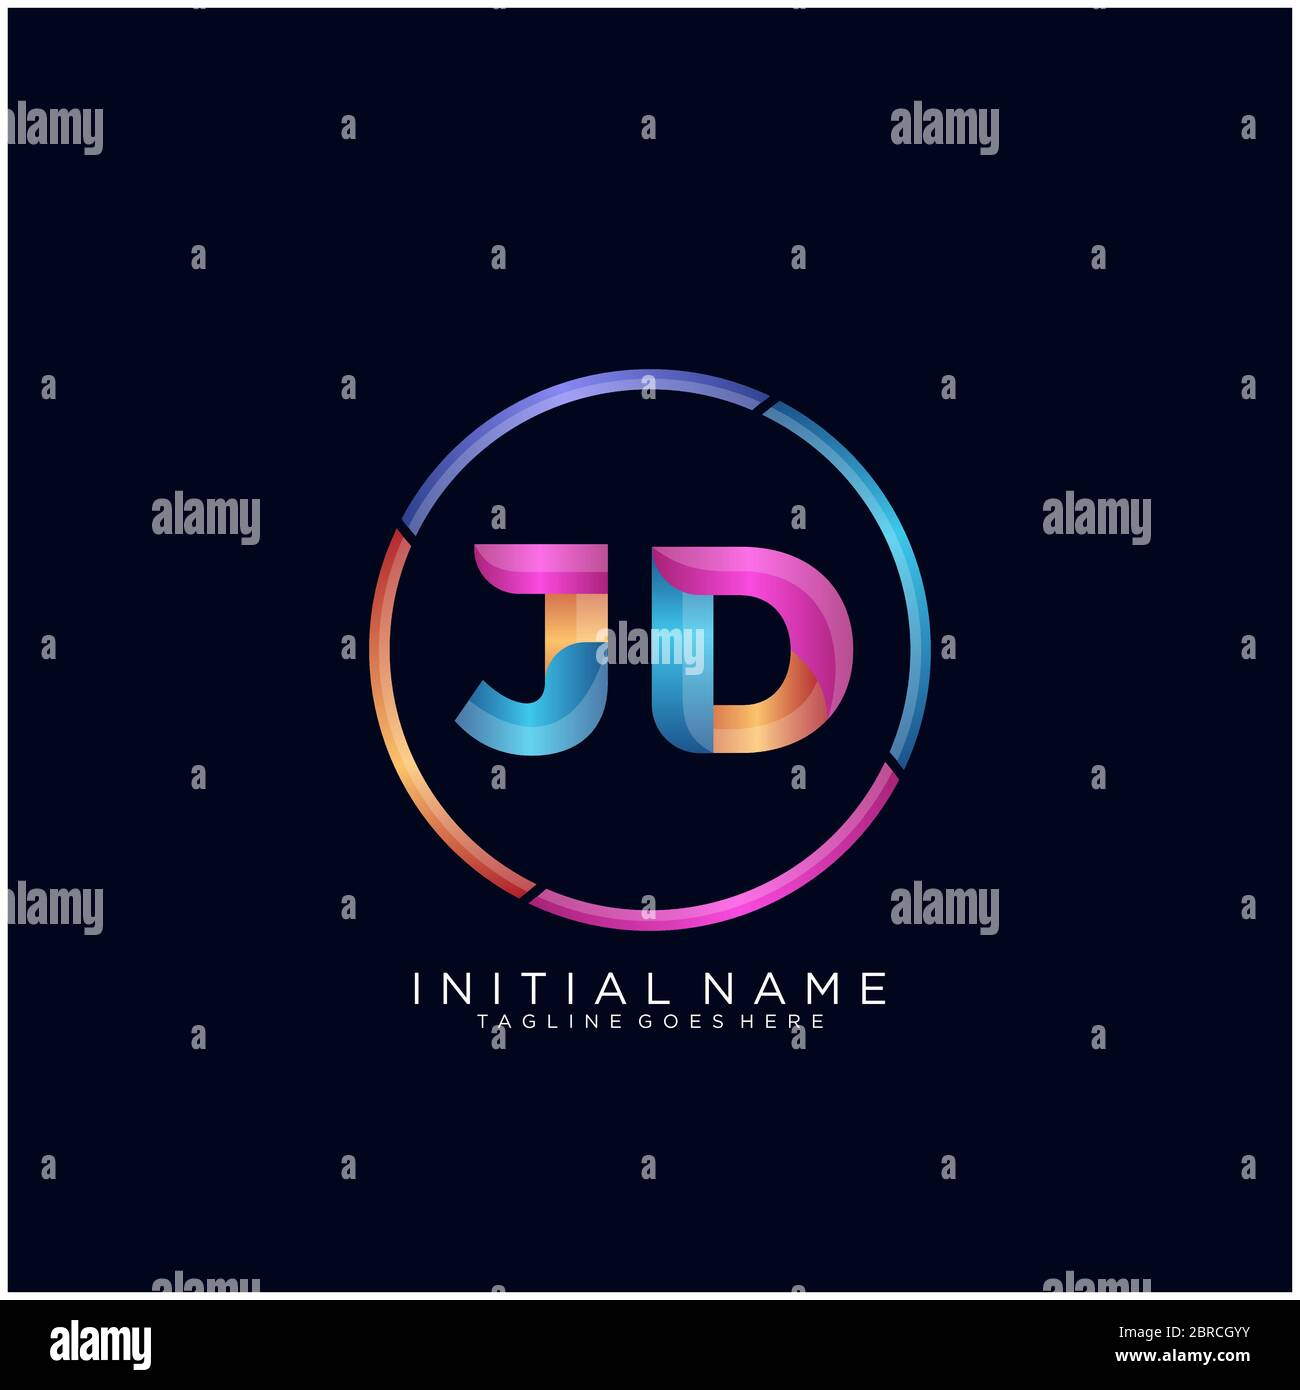 initial letter jd curve rounded logo gradient vibrant colorful glossy colors on black background stock vector image art alamy alamy